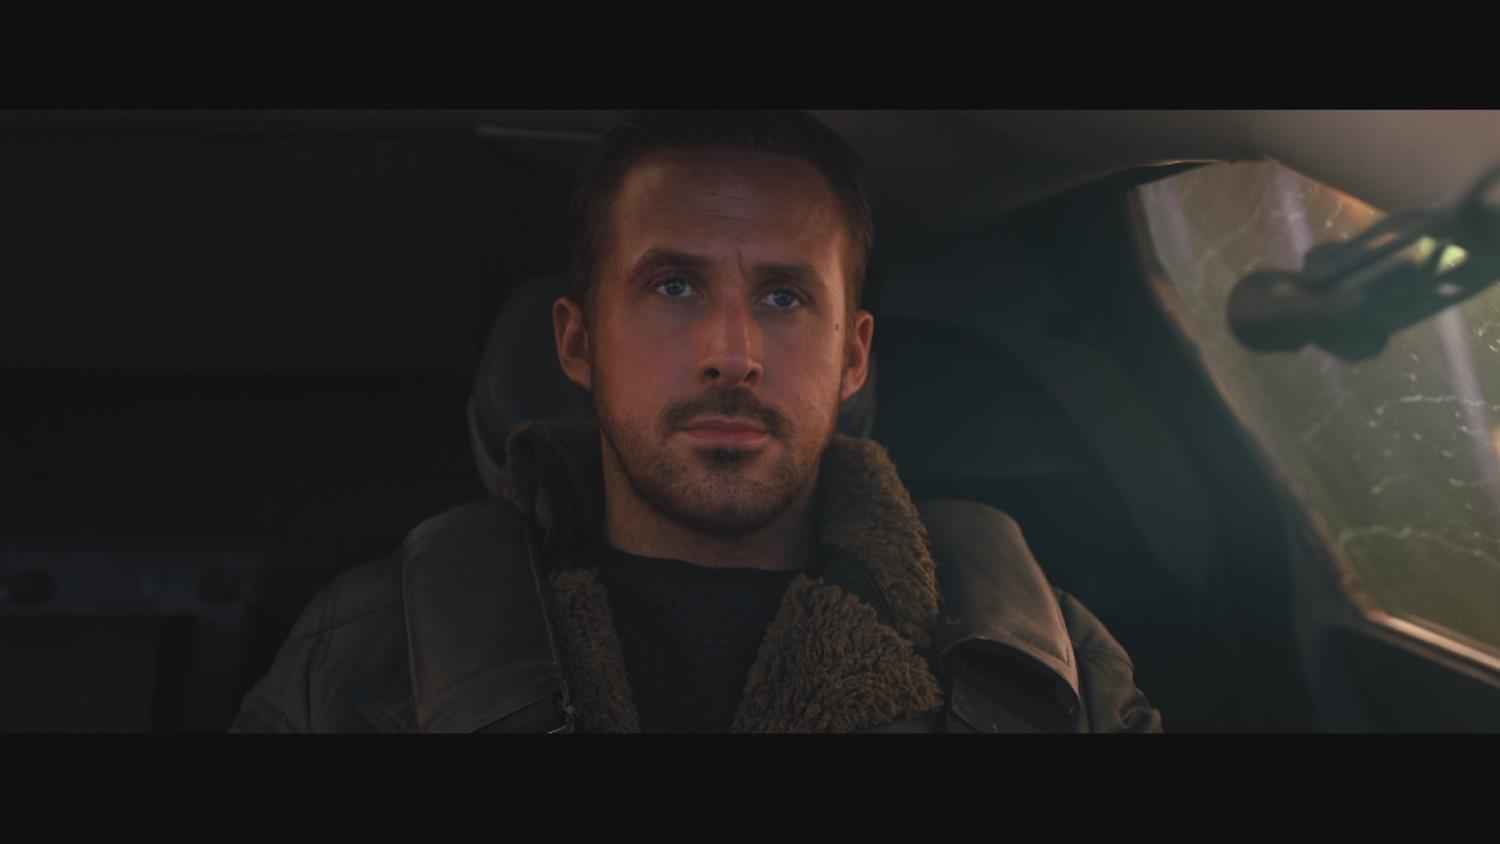 Ryan Gosling & Harrison Ford in This Bladerunner 2049 Exclusive